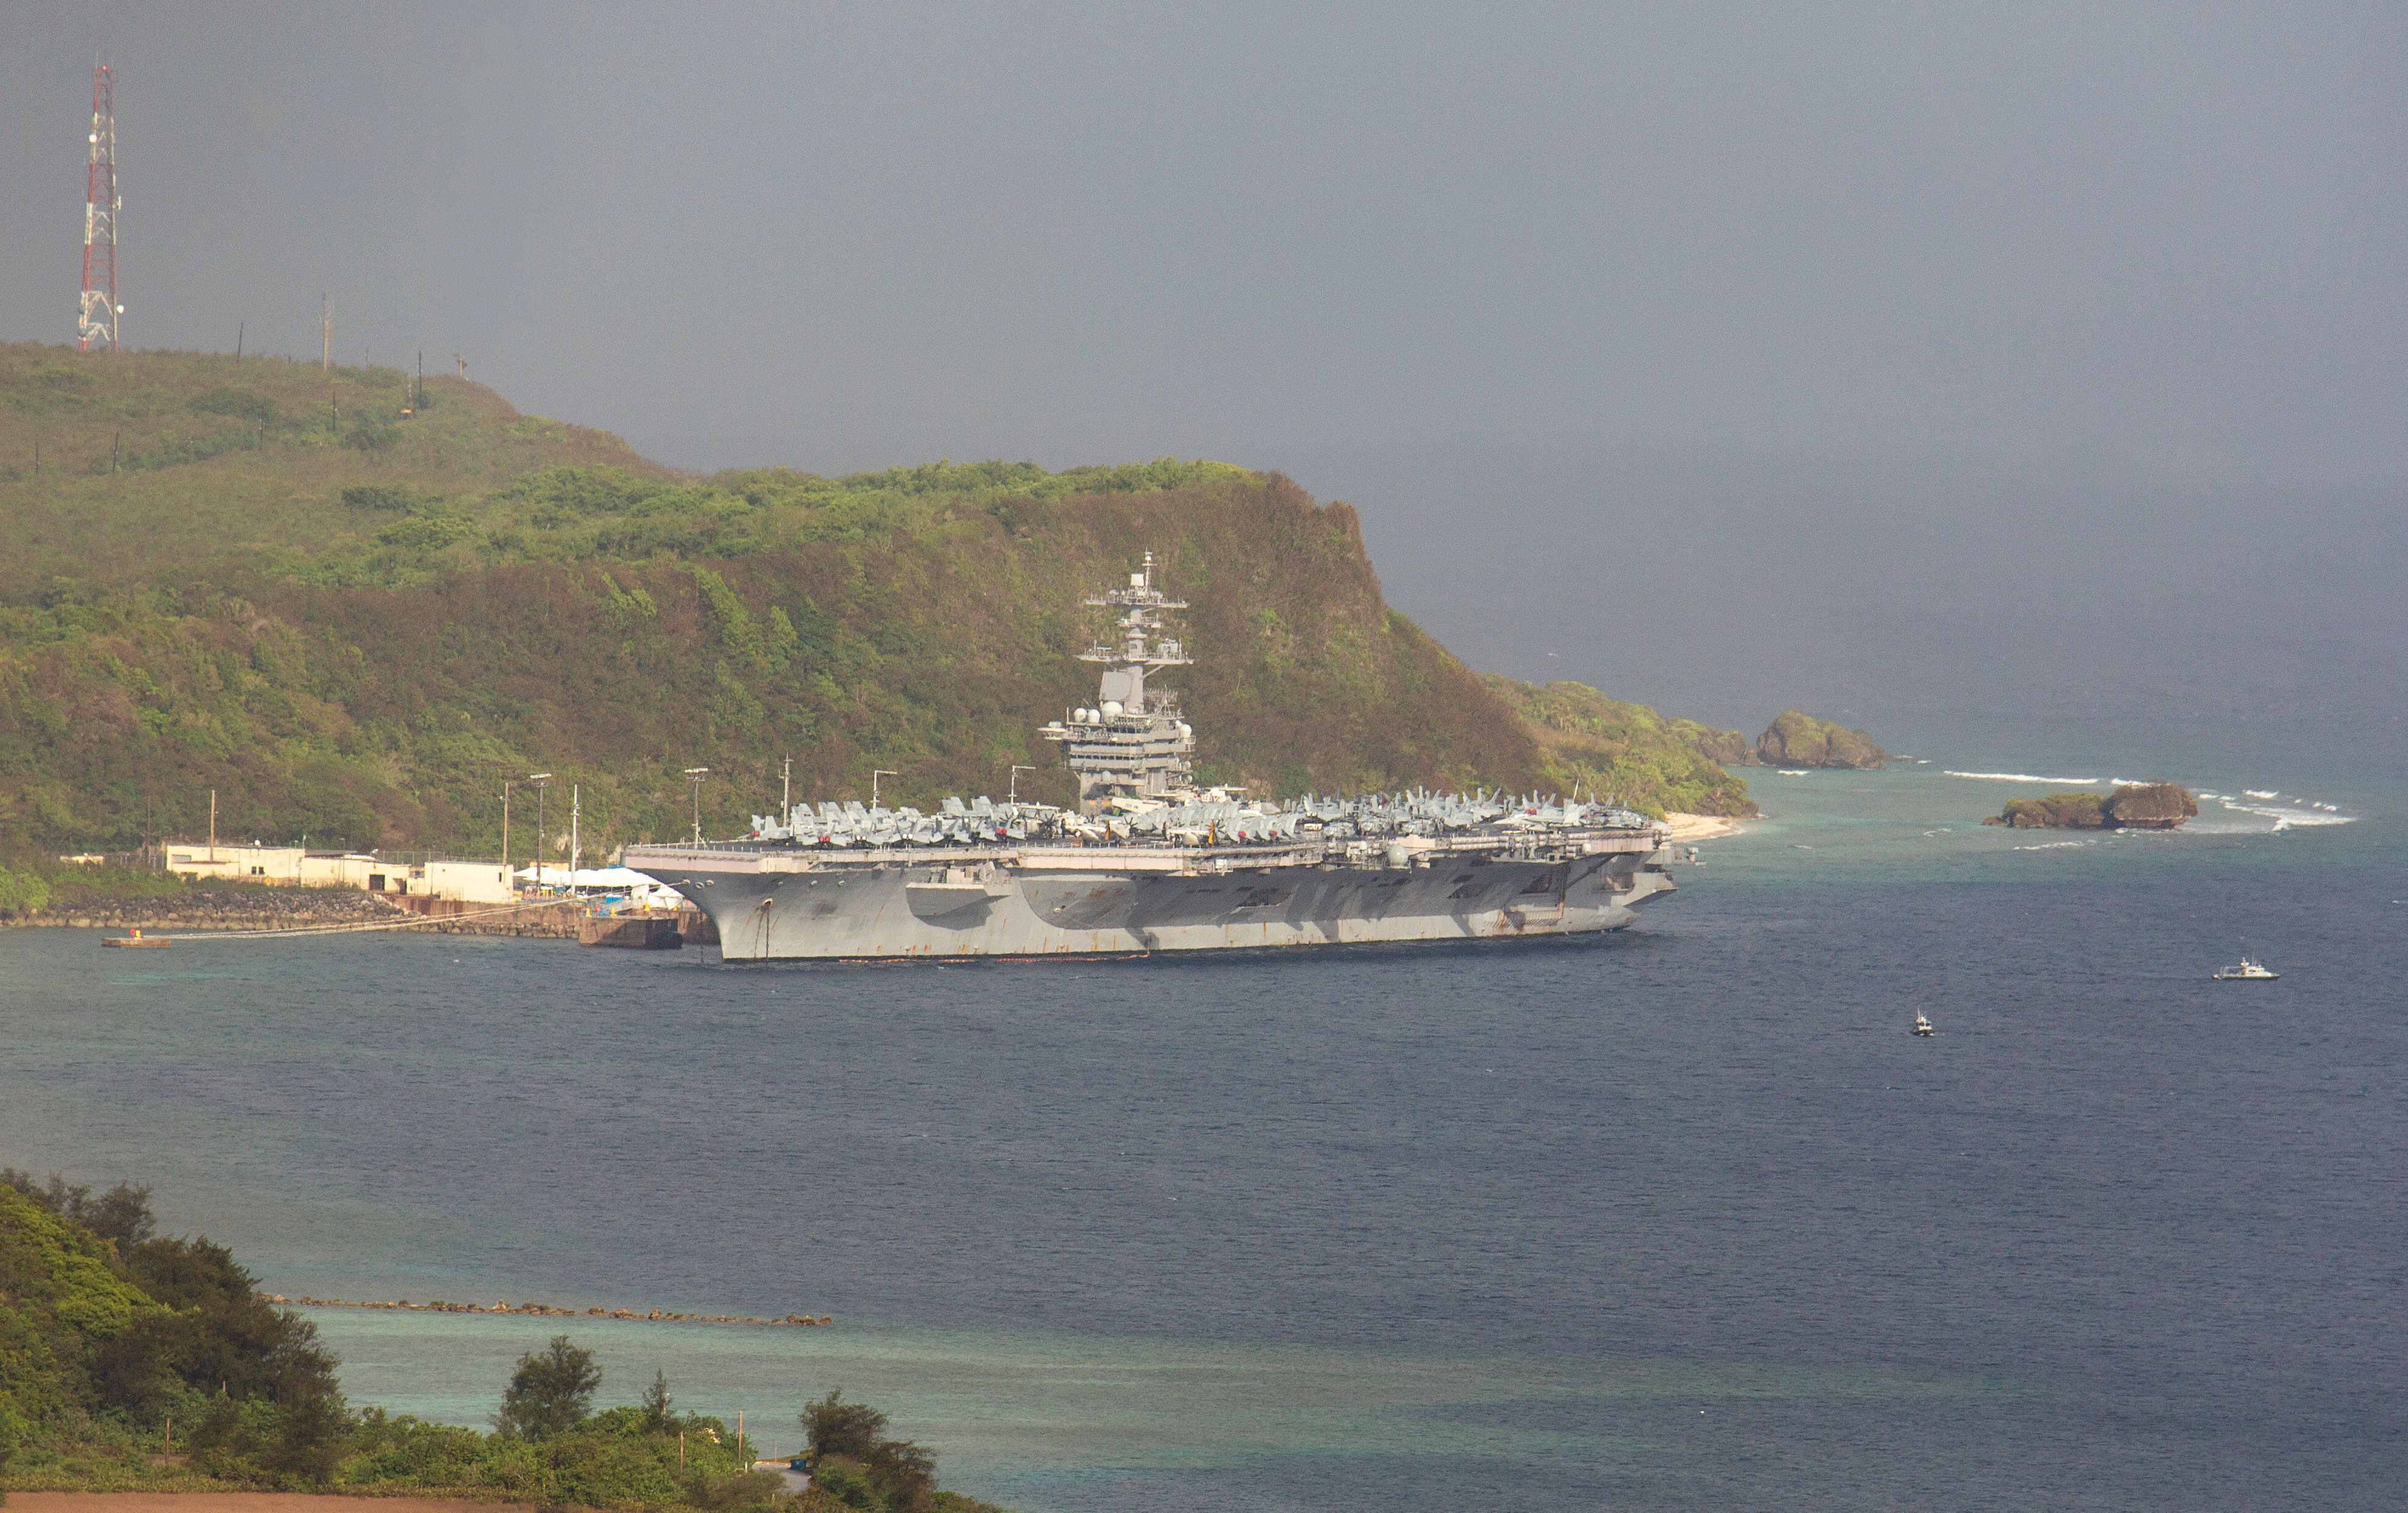 The aircraft carrier USS Theodore Roosevelt, docked at Naval Base Guam in Apra Harbor on April 27.